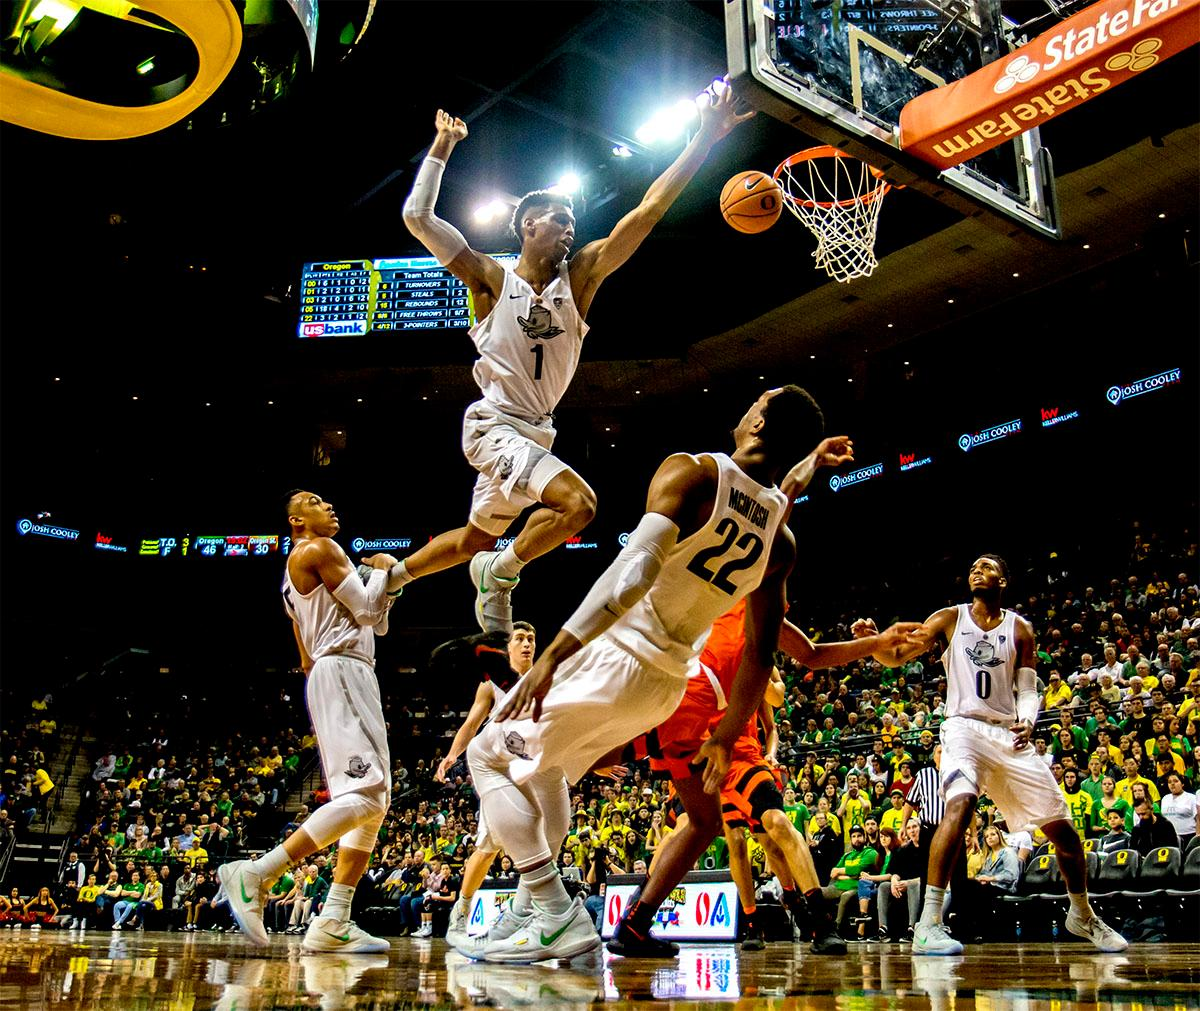 The Duck's Kenny Wooten (#1) flies high as he attempts to defend the basket against the Beavers. The Ducks defeated the Beavers in the civil war game, 66-57, at Matthew Knight Arena on Saturday night. Elijah Brown scored a game high of 20 points with 18 of the points coming in the first half, Paul White added 17 points. The Ducks are now 14-7 overall and 4-4 in conference play. The Ducks will next face California on Thursday Feb. 1 at 6:00 p.m. Photo by August Frank, Oregon News Lab